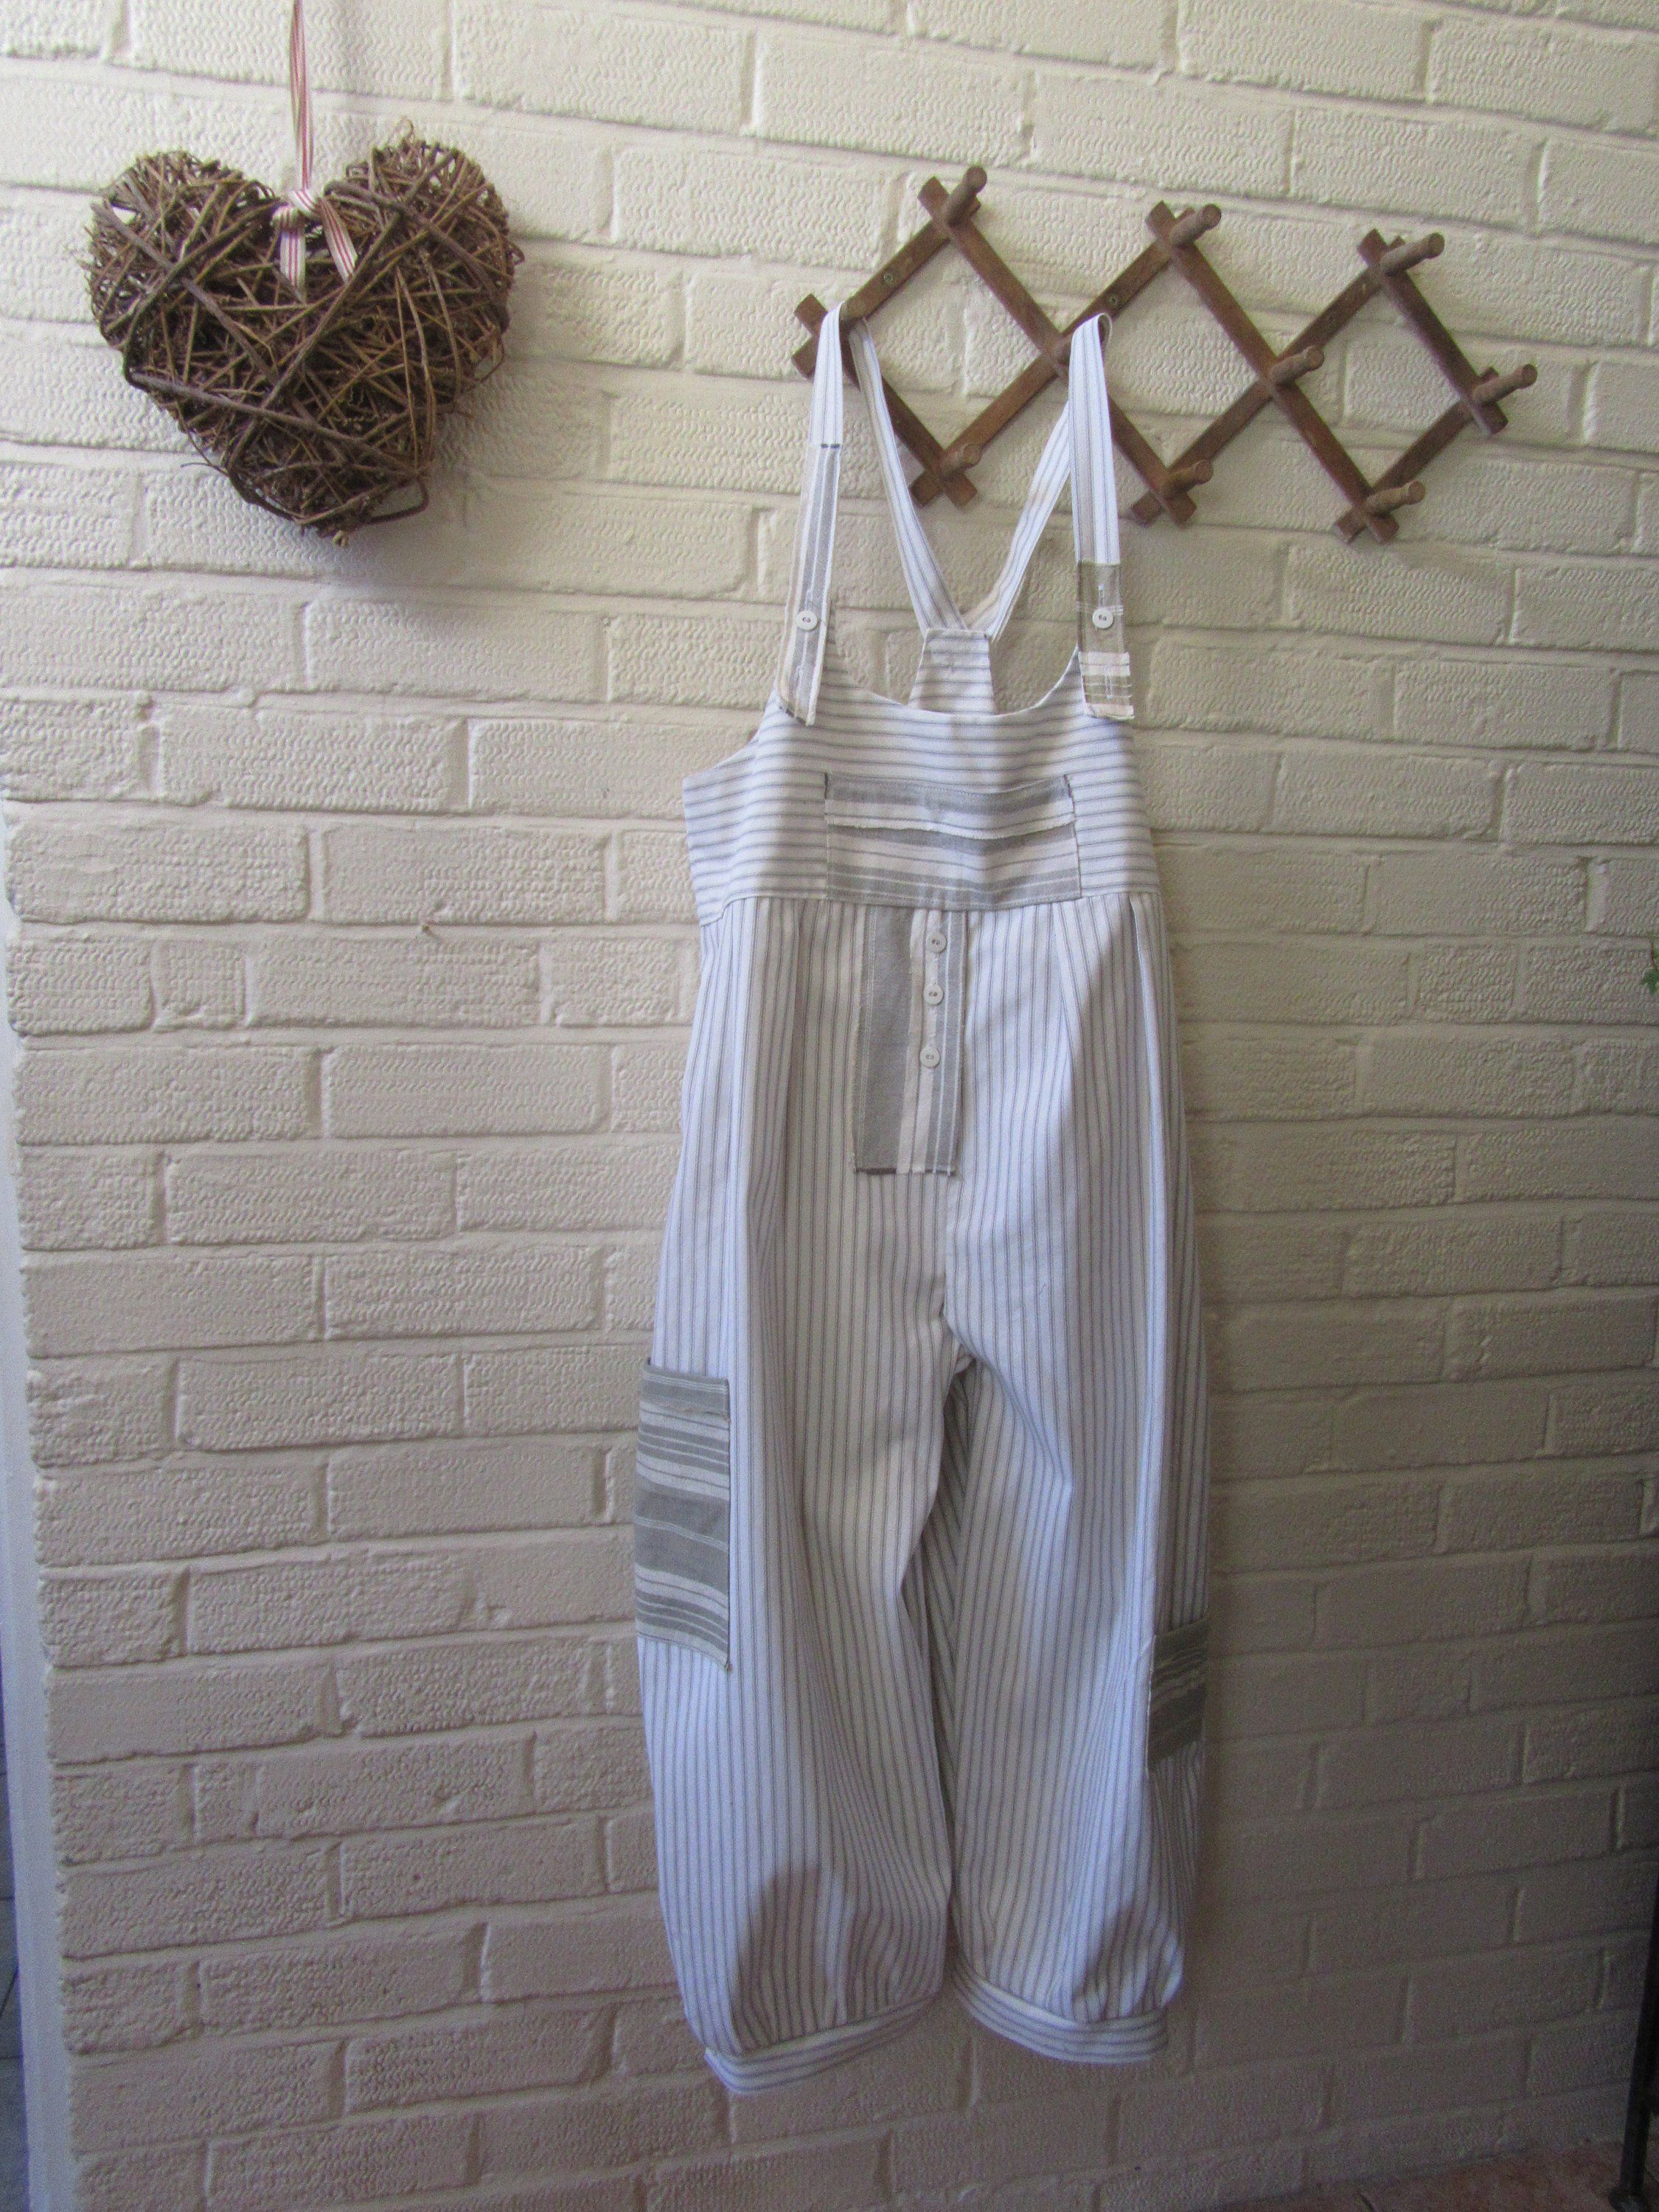 51b7fca53d79 Lagenlook quirky dropped crotch baggy dungarees